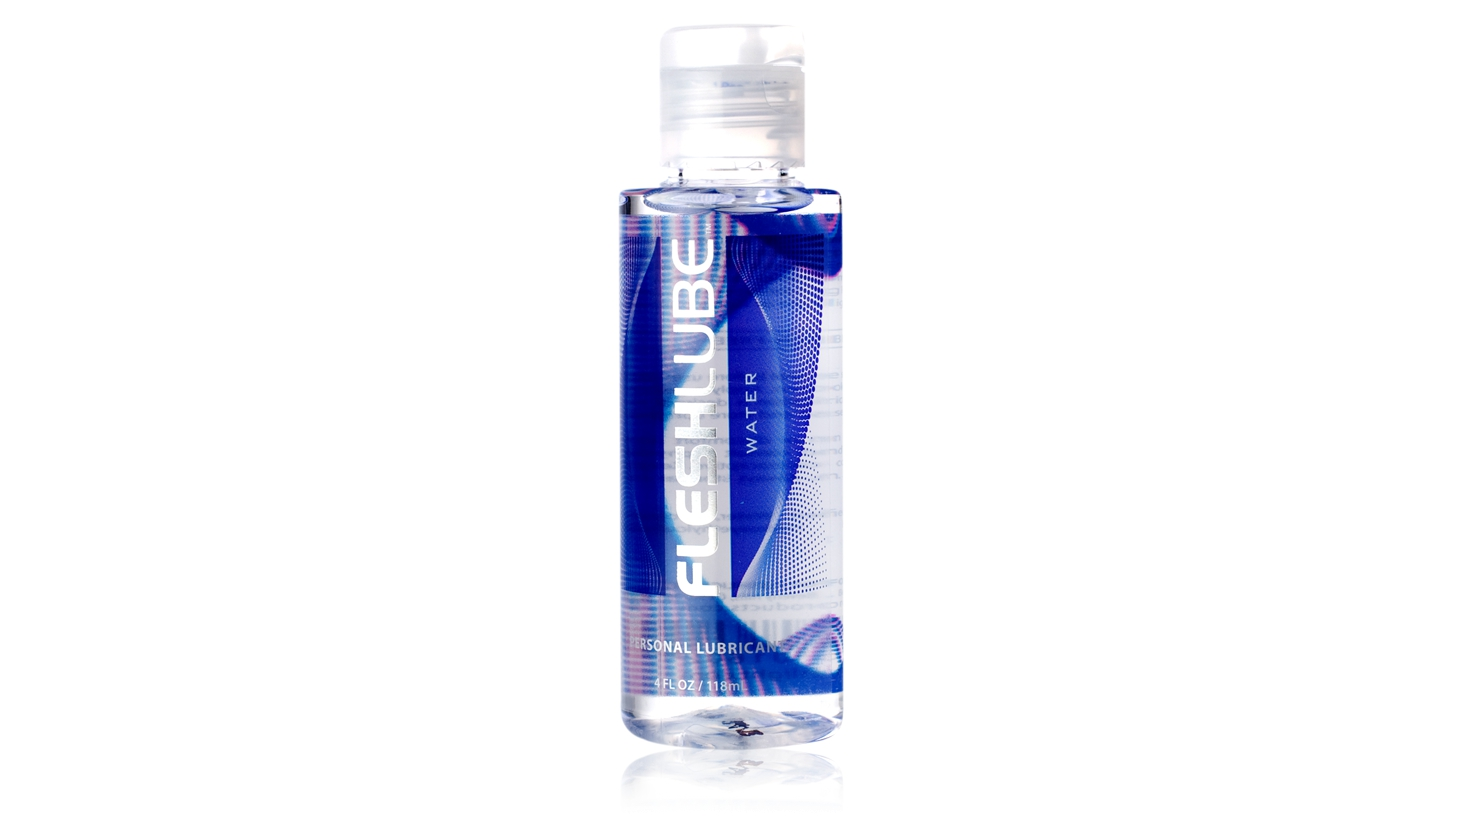 Water-Based Lubricant Image 1